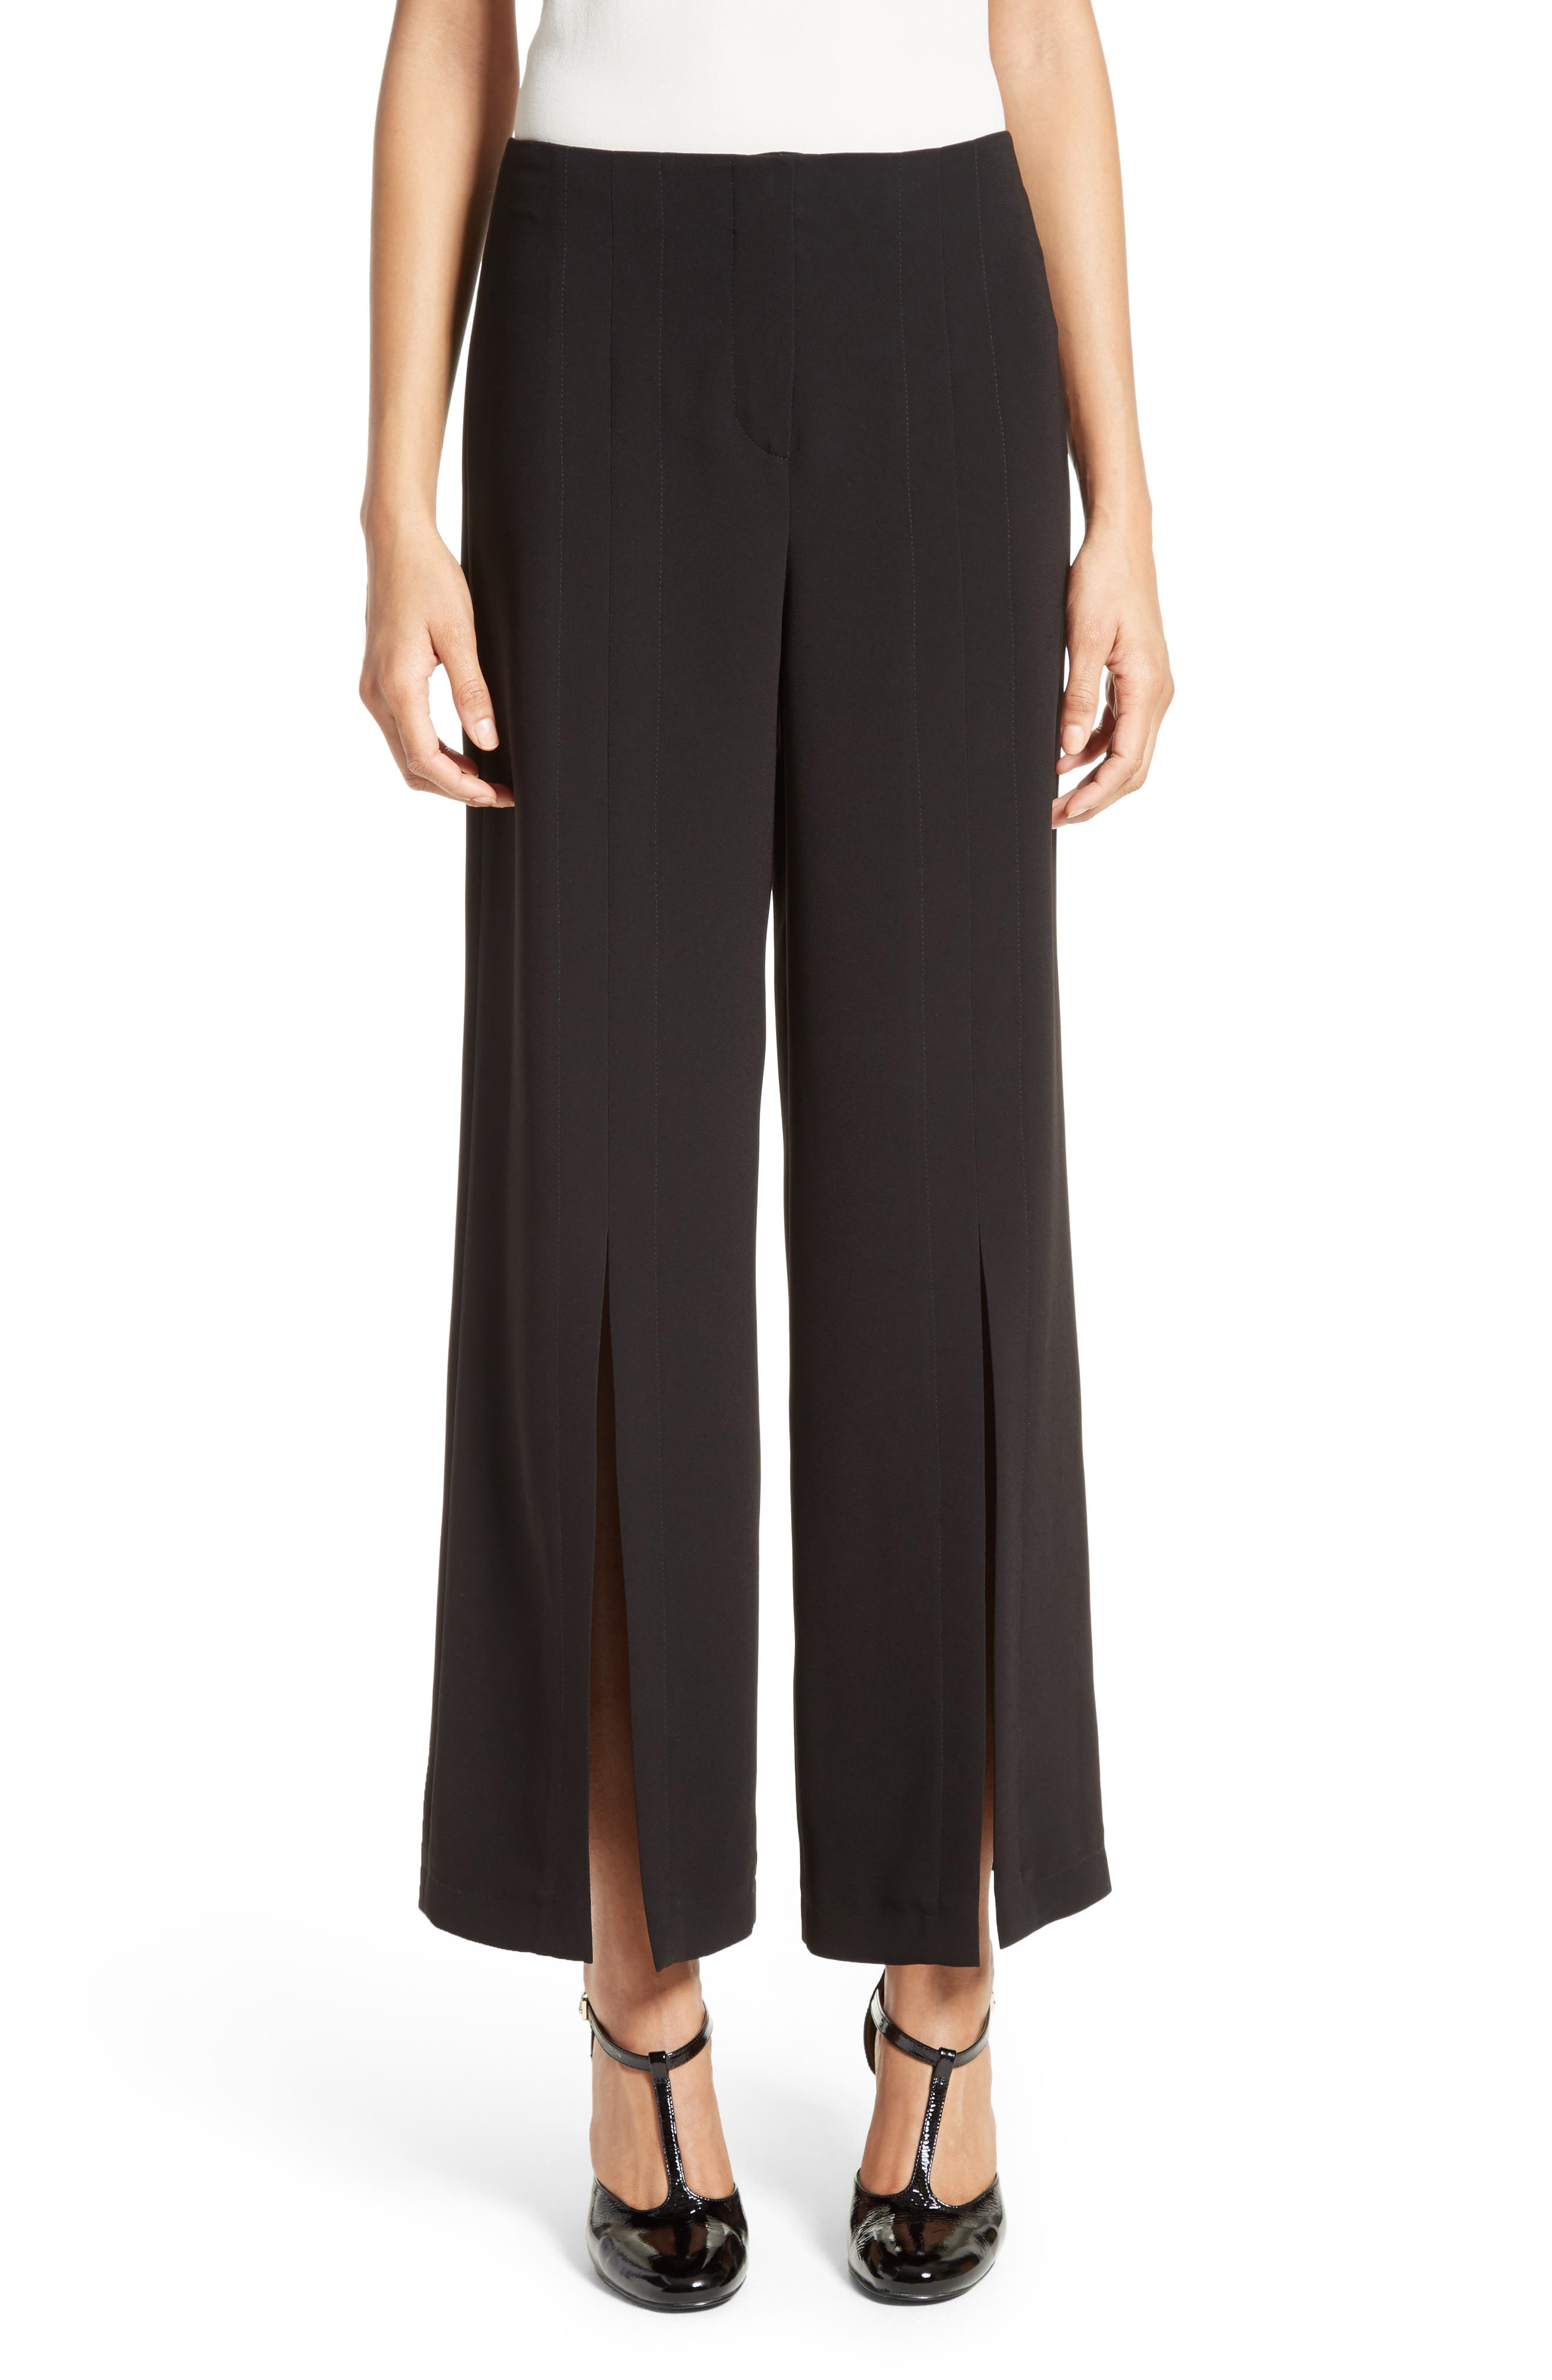 Alternate Image 1 Selected - Yigal Azrouël Slit Wide Leg Pants